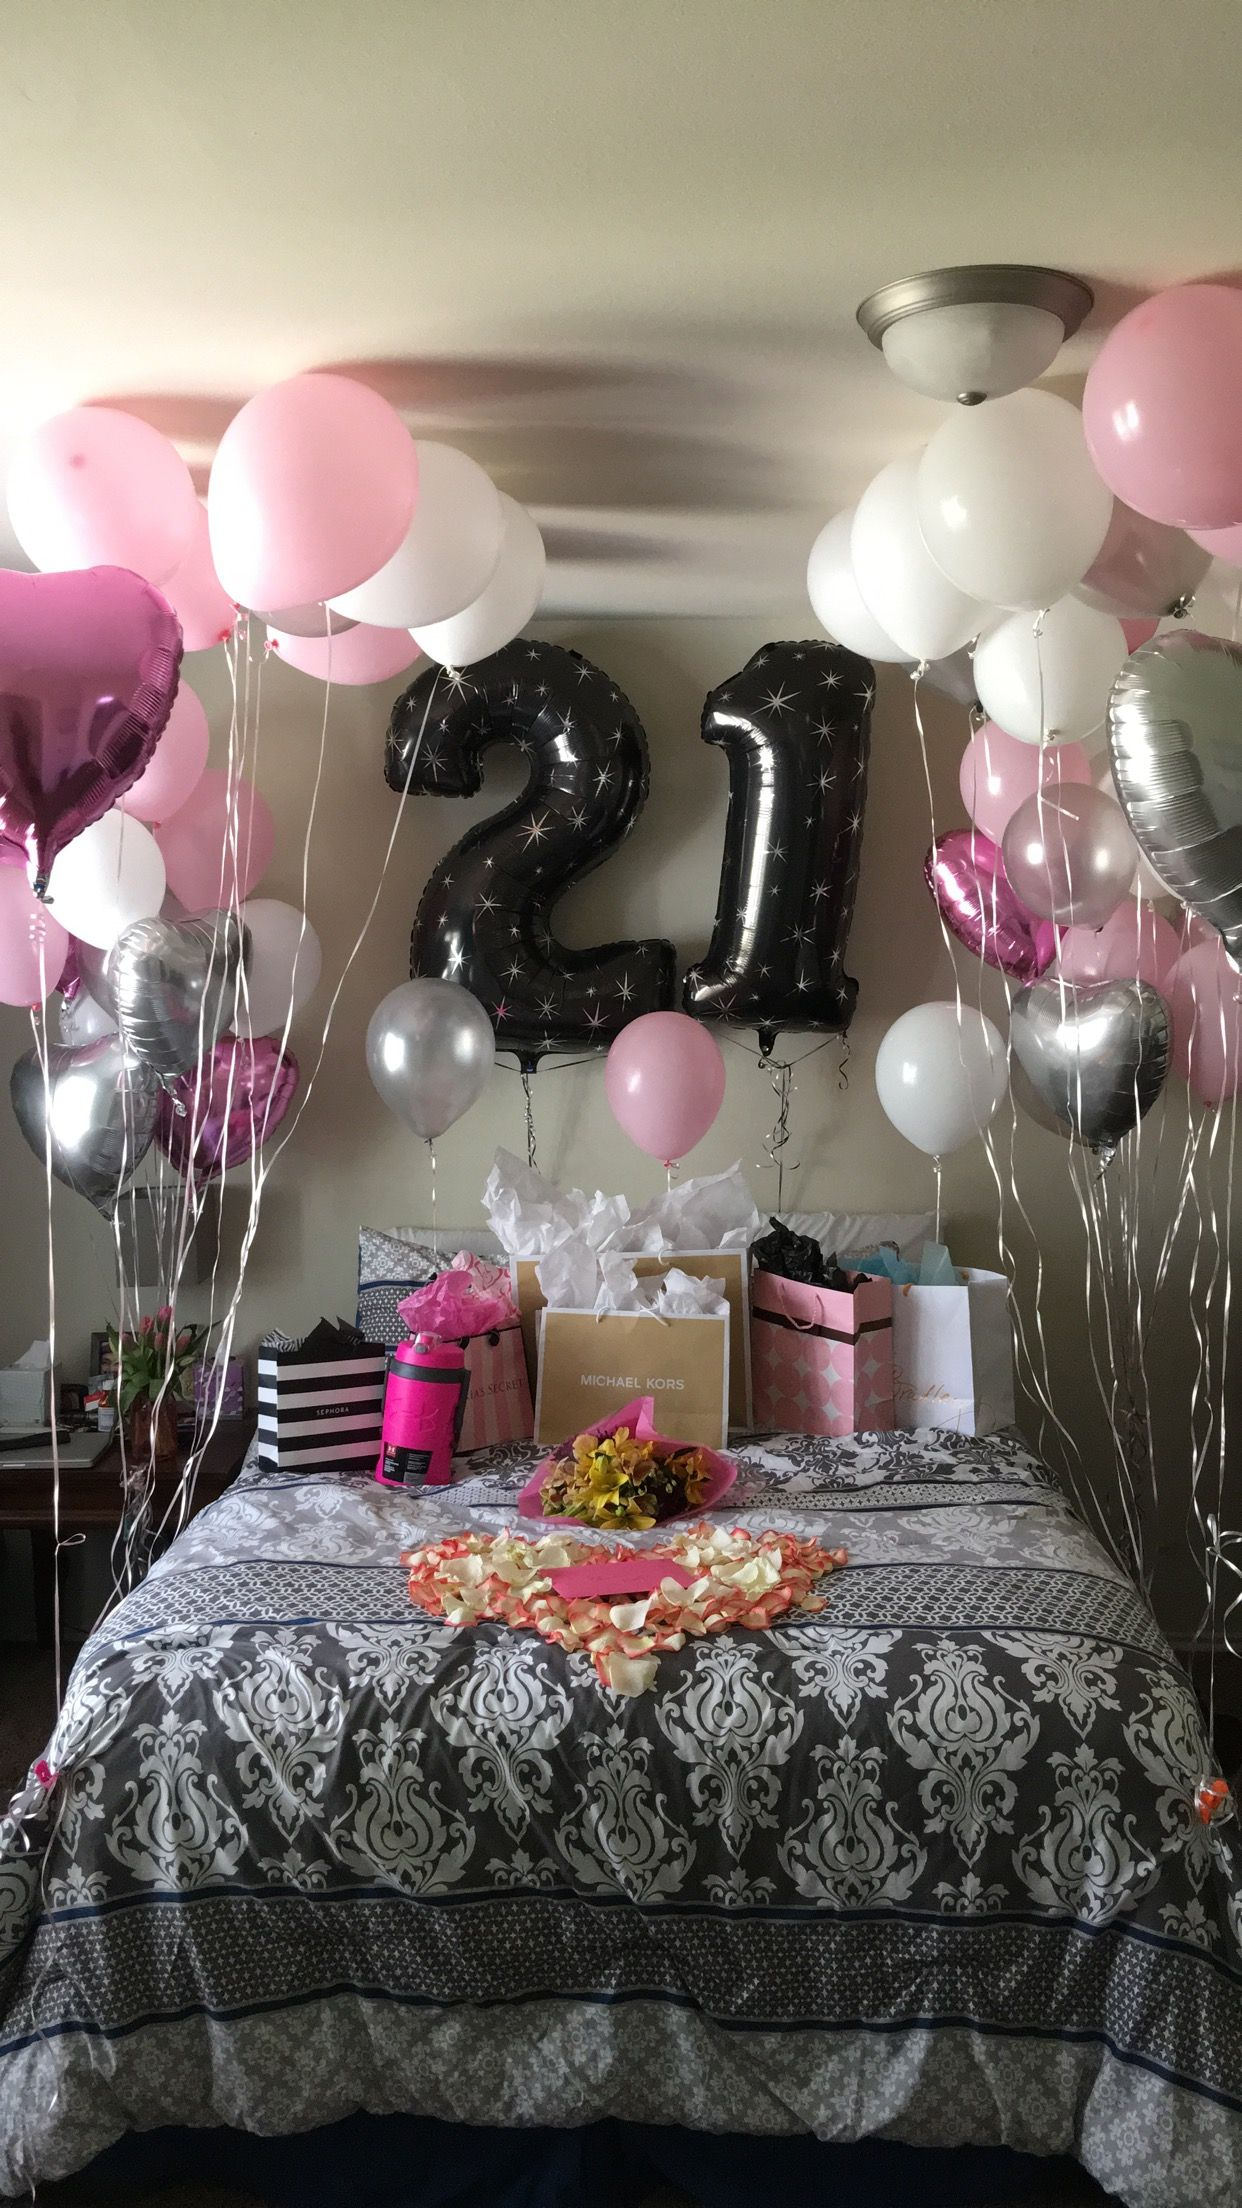 18th birthday surprise ideas for girlfriend